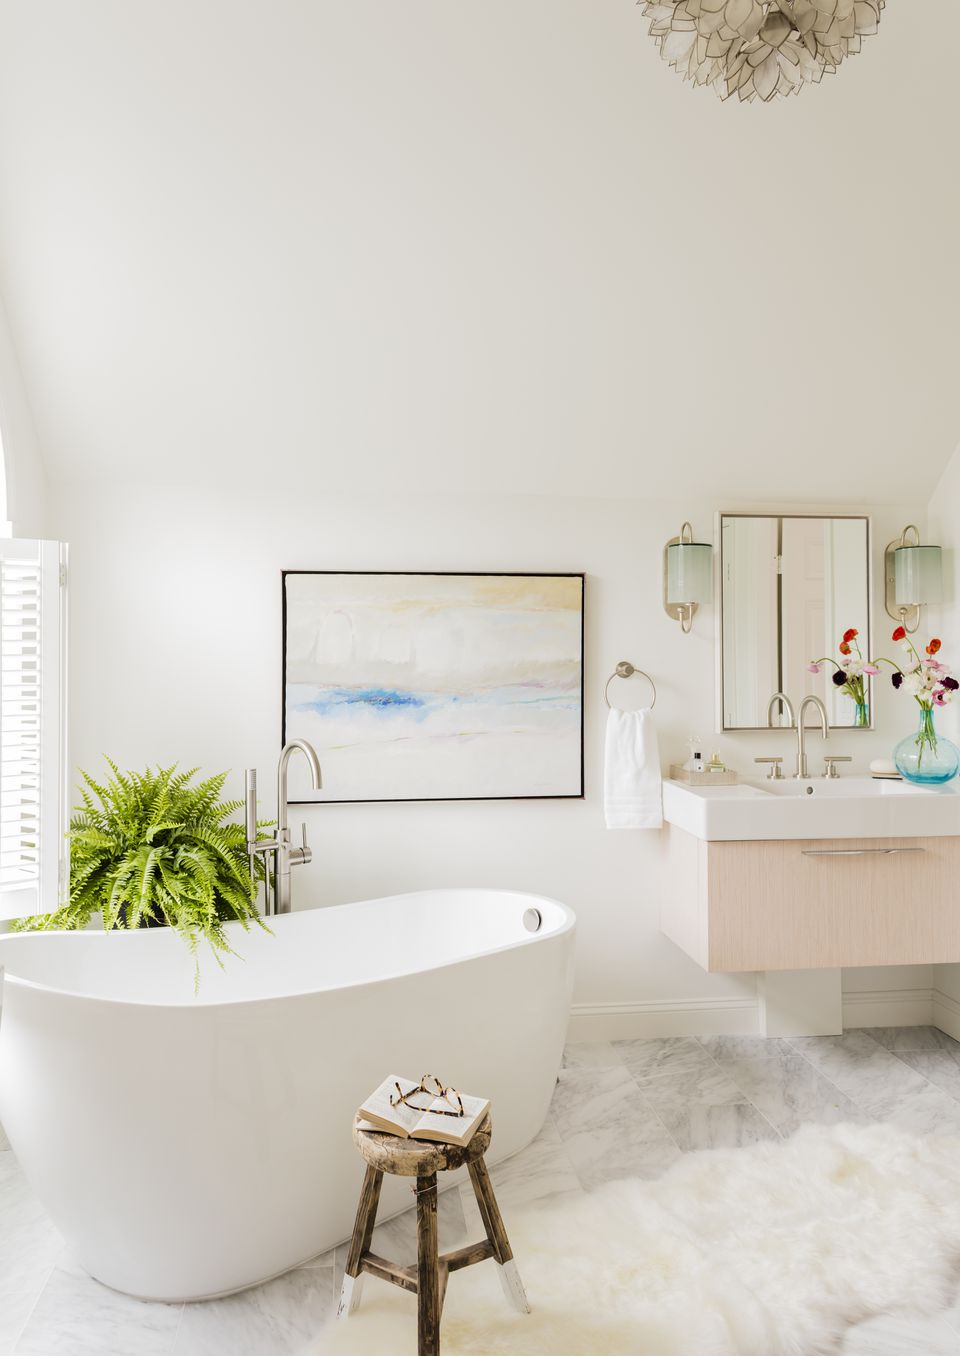 Pastel colors and an oil painting by Robert DiGiovanni brightened the room.